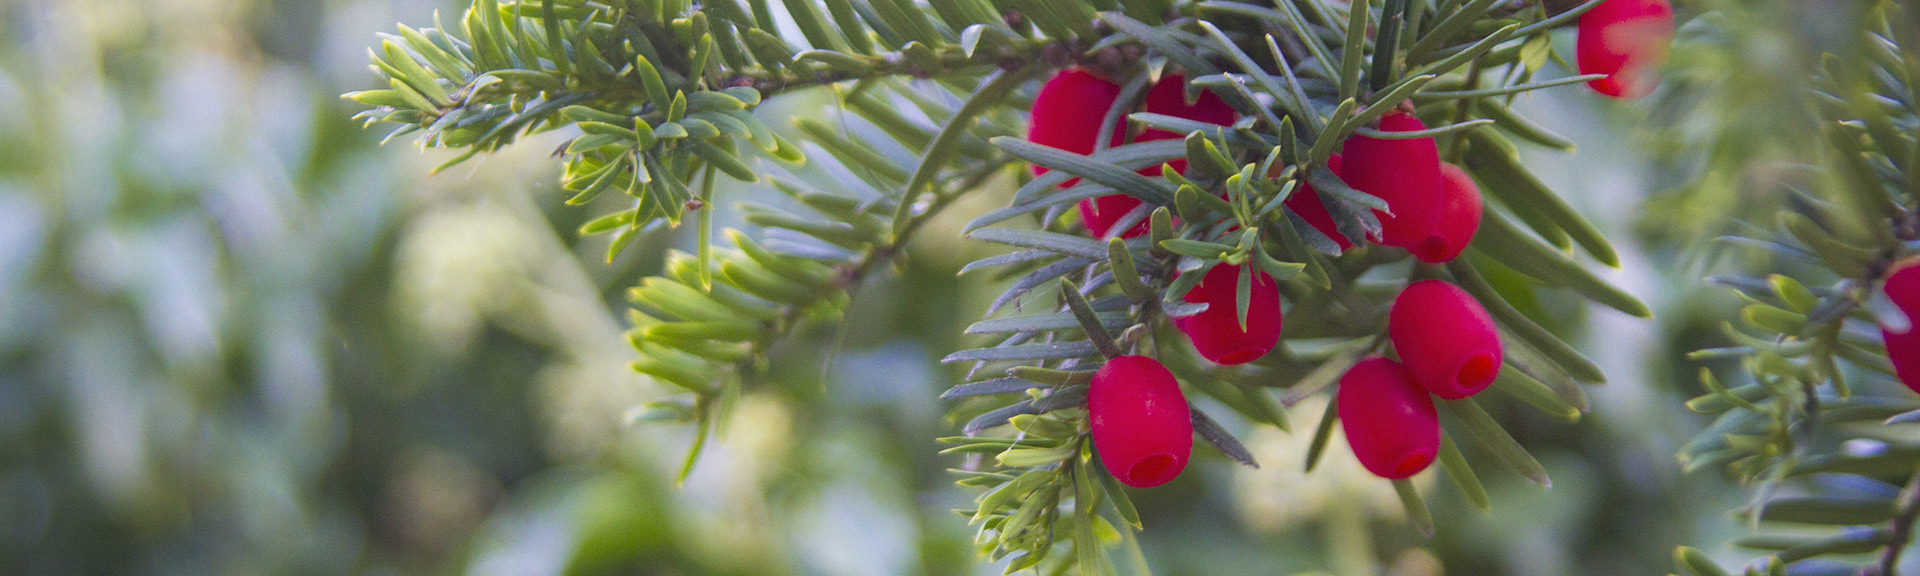 Red pine berries at Marywood